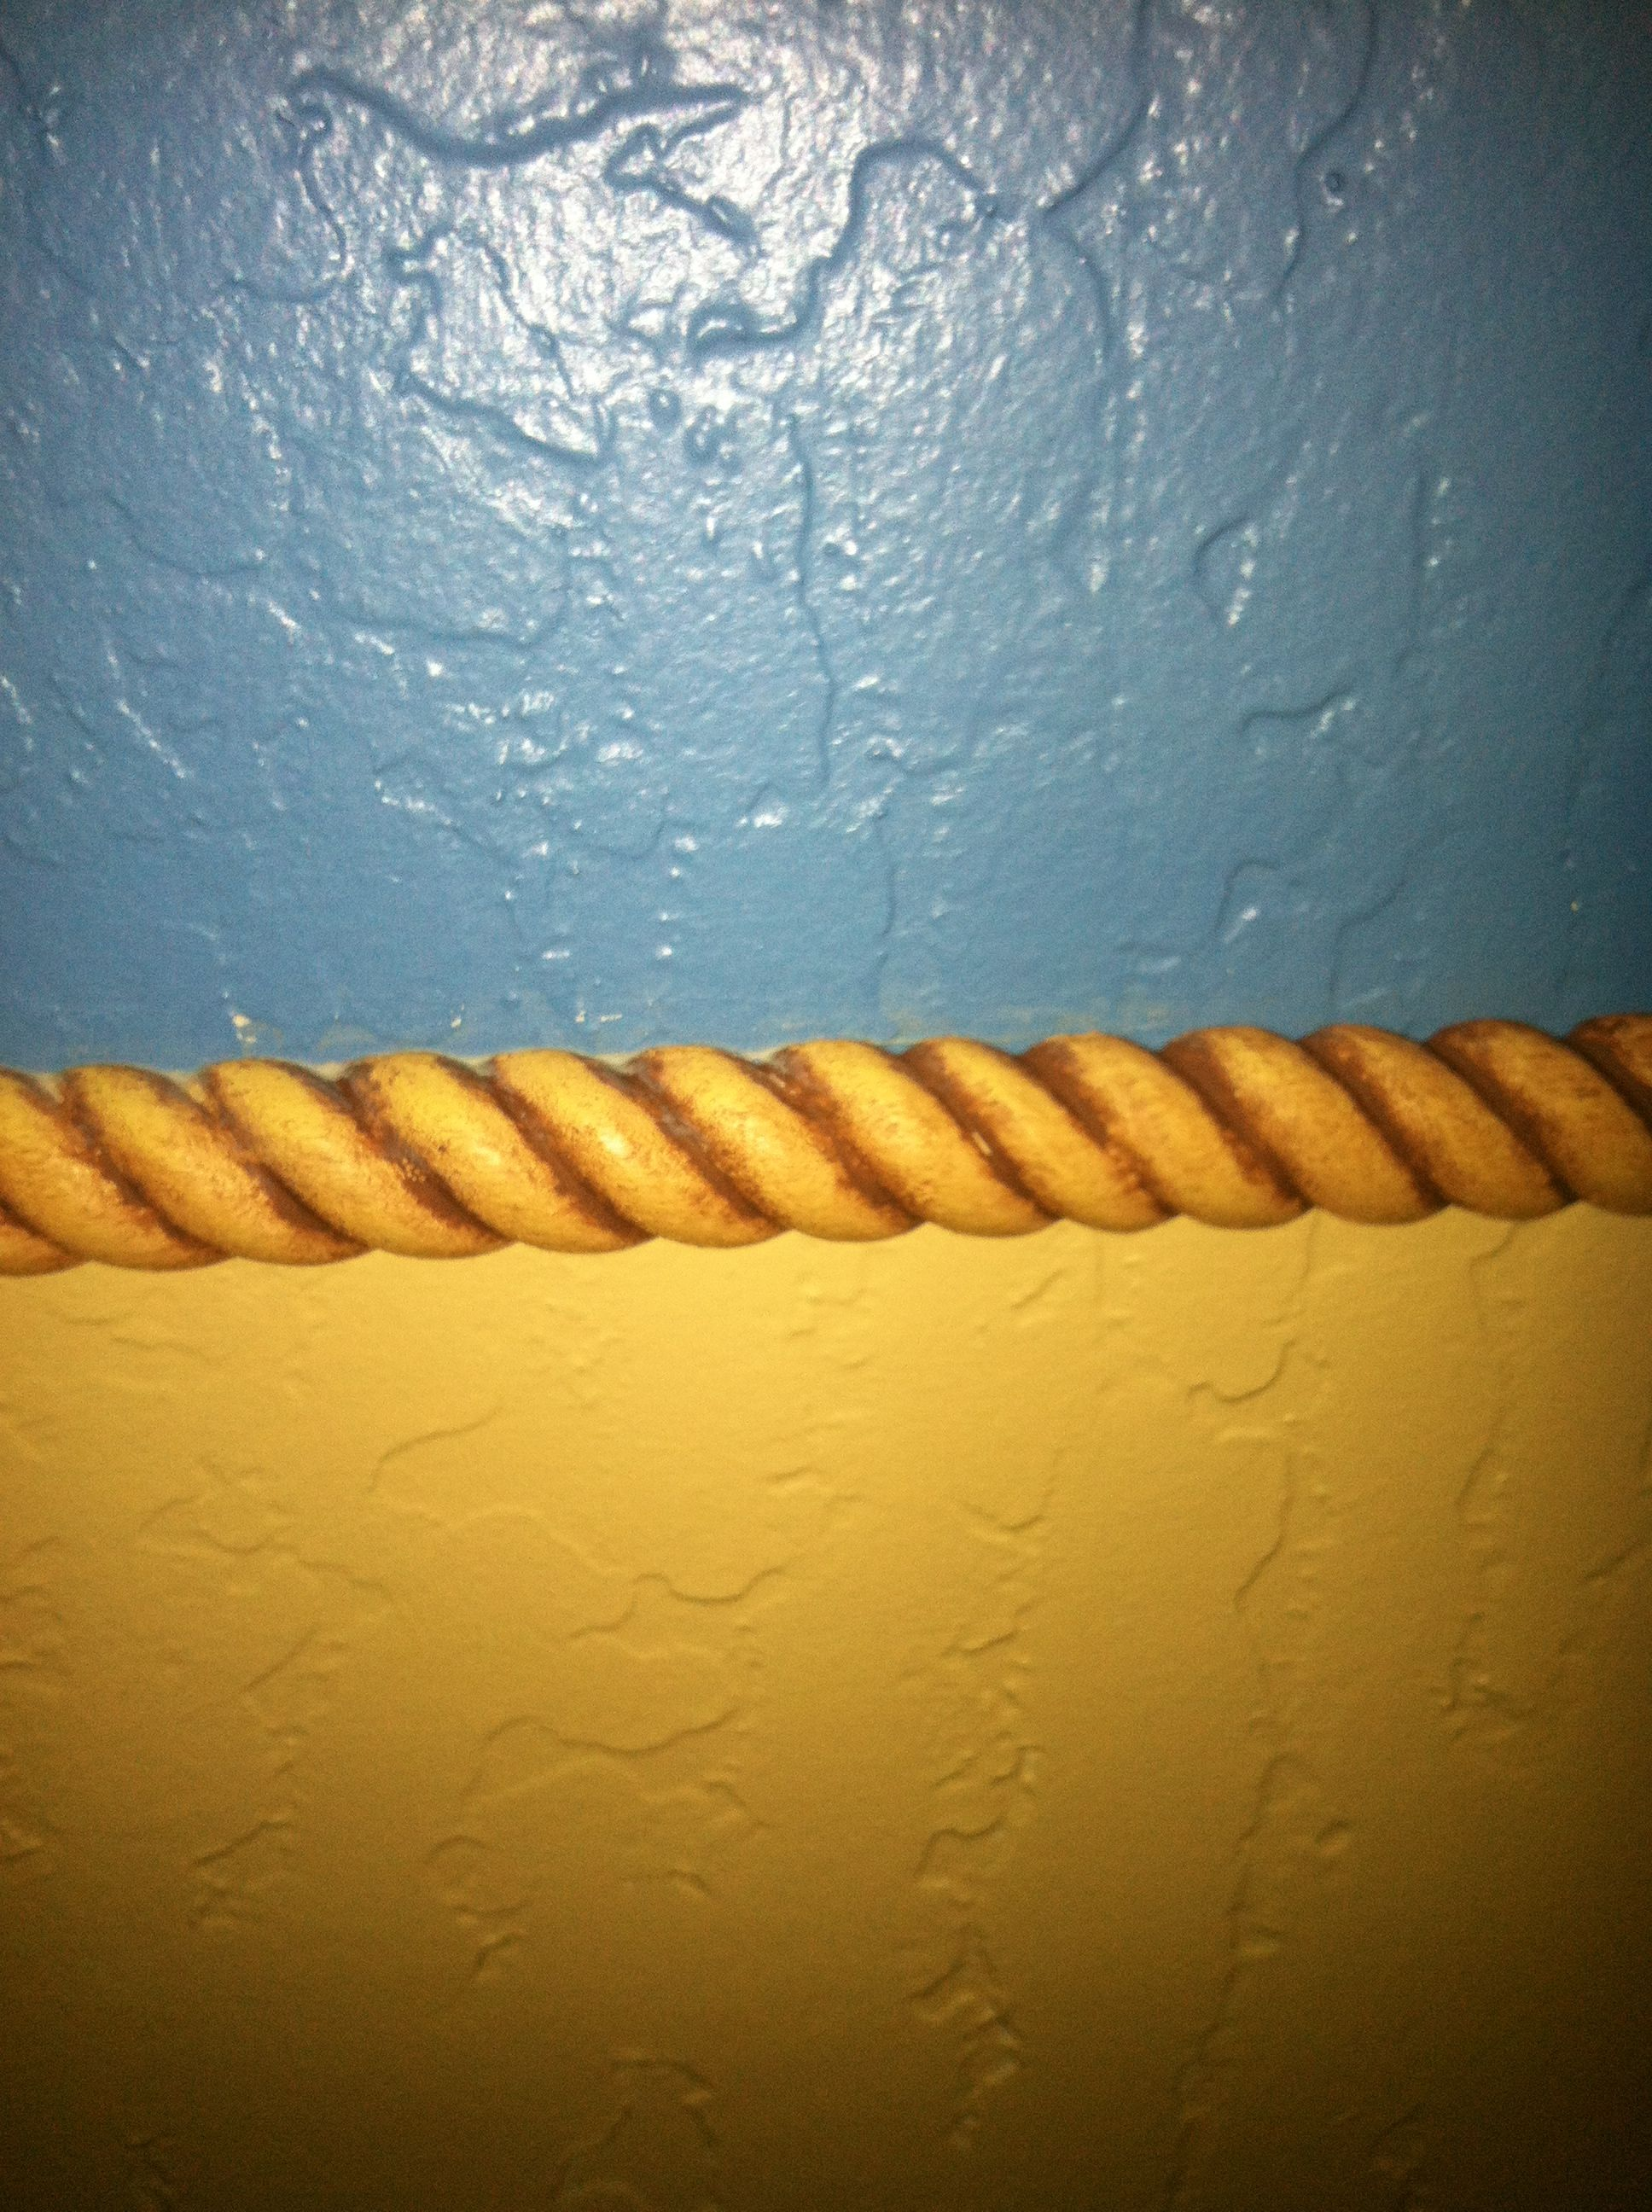 Rope is actually decorative wood trim painted with the Carmel wall ...